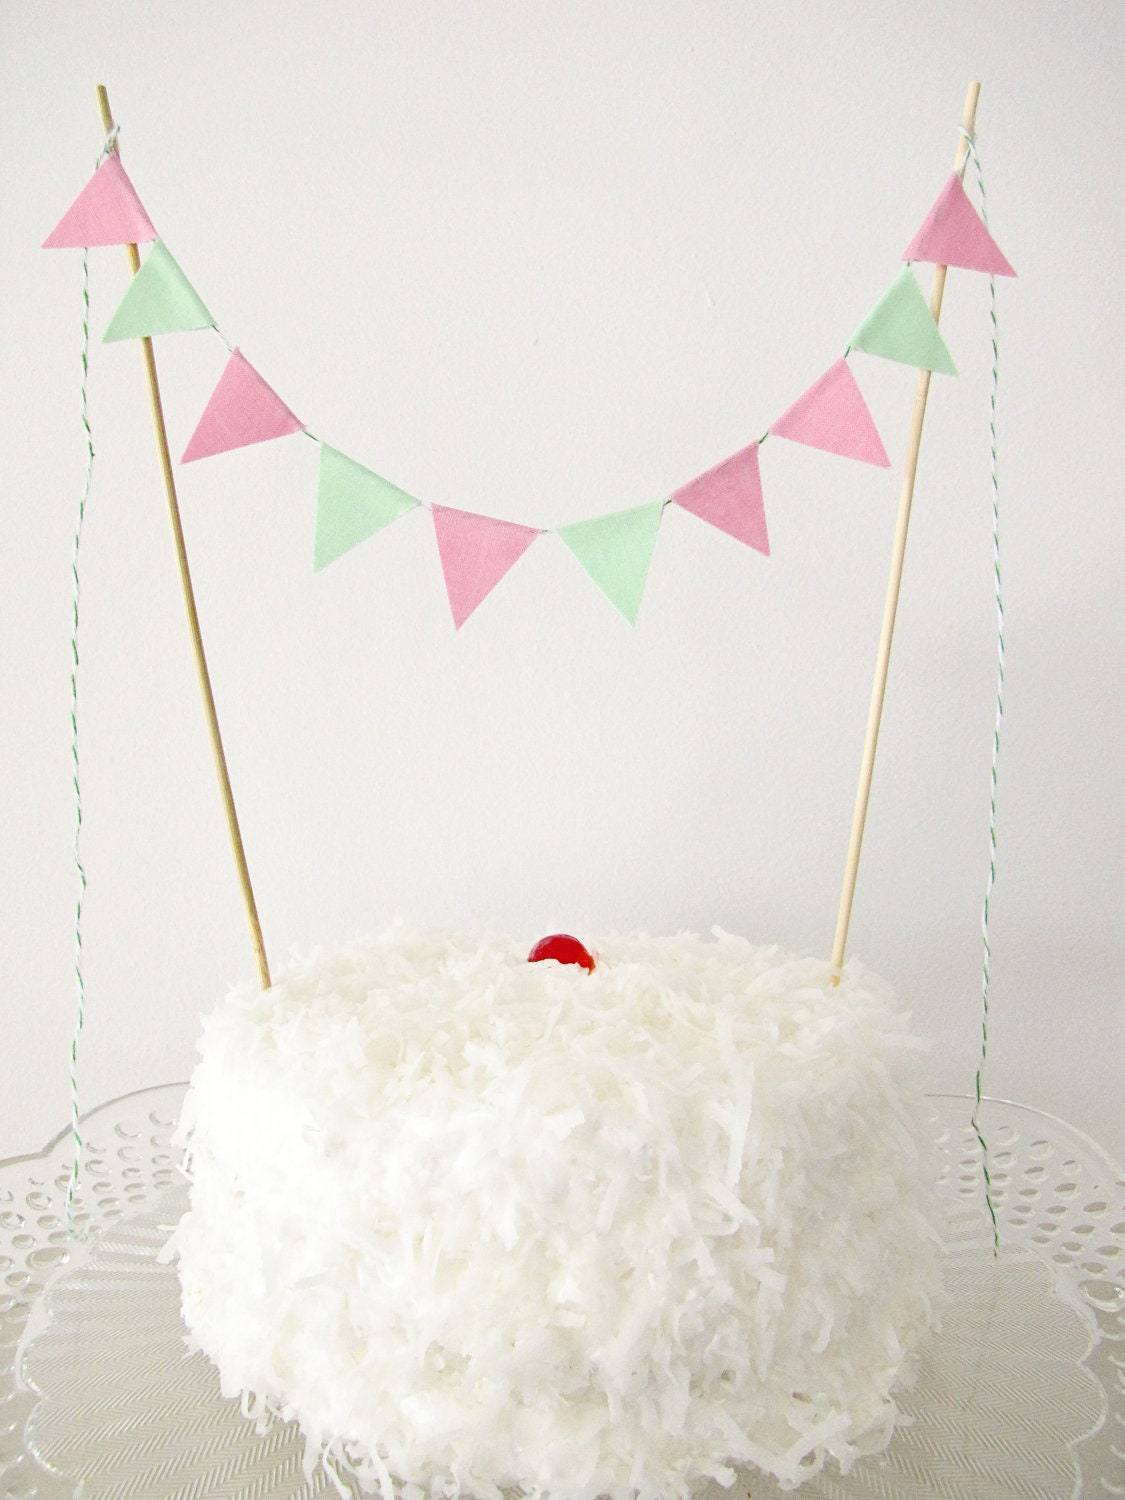 Fabric Cake Bunting Decoration - Cake Topper - Wedding, Birthday Party, Shower Decor in pink and mint